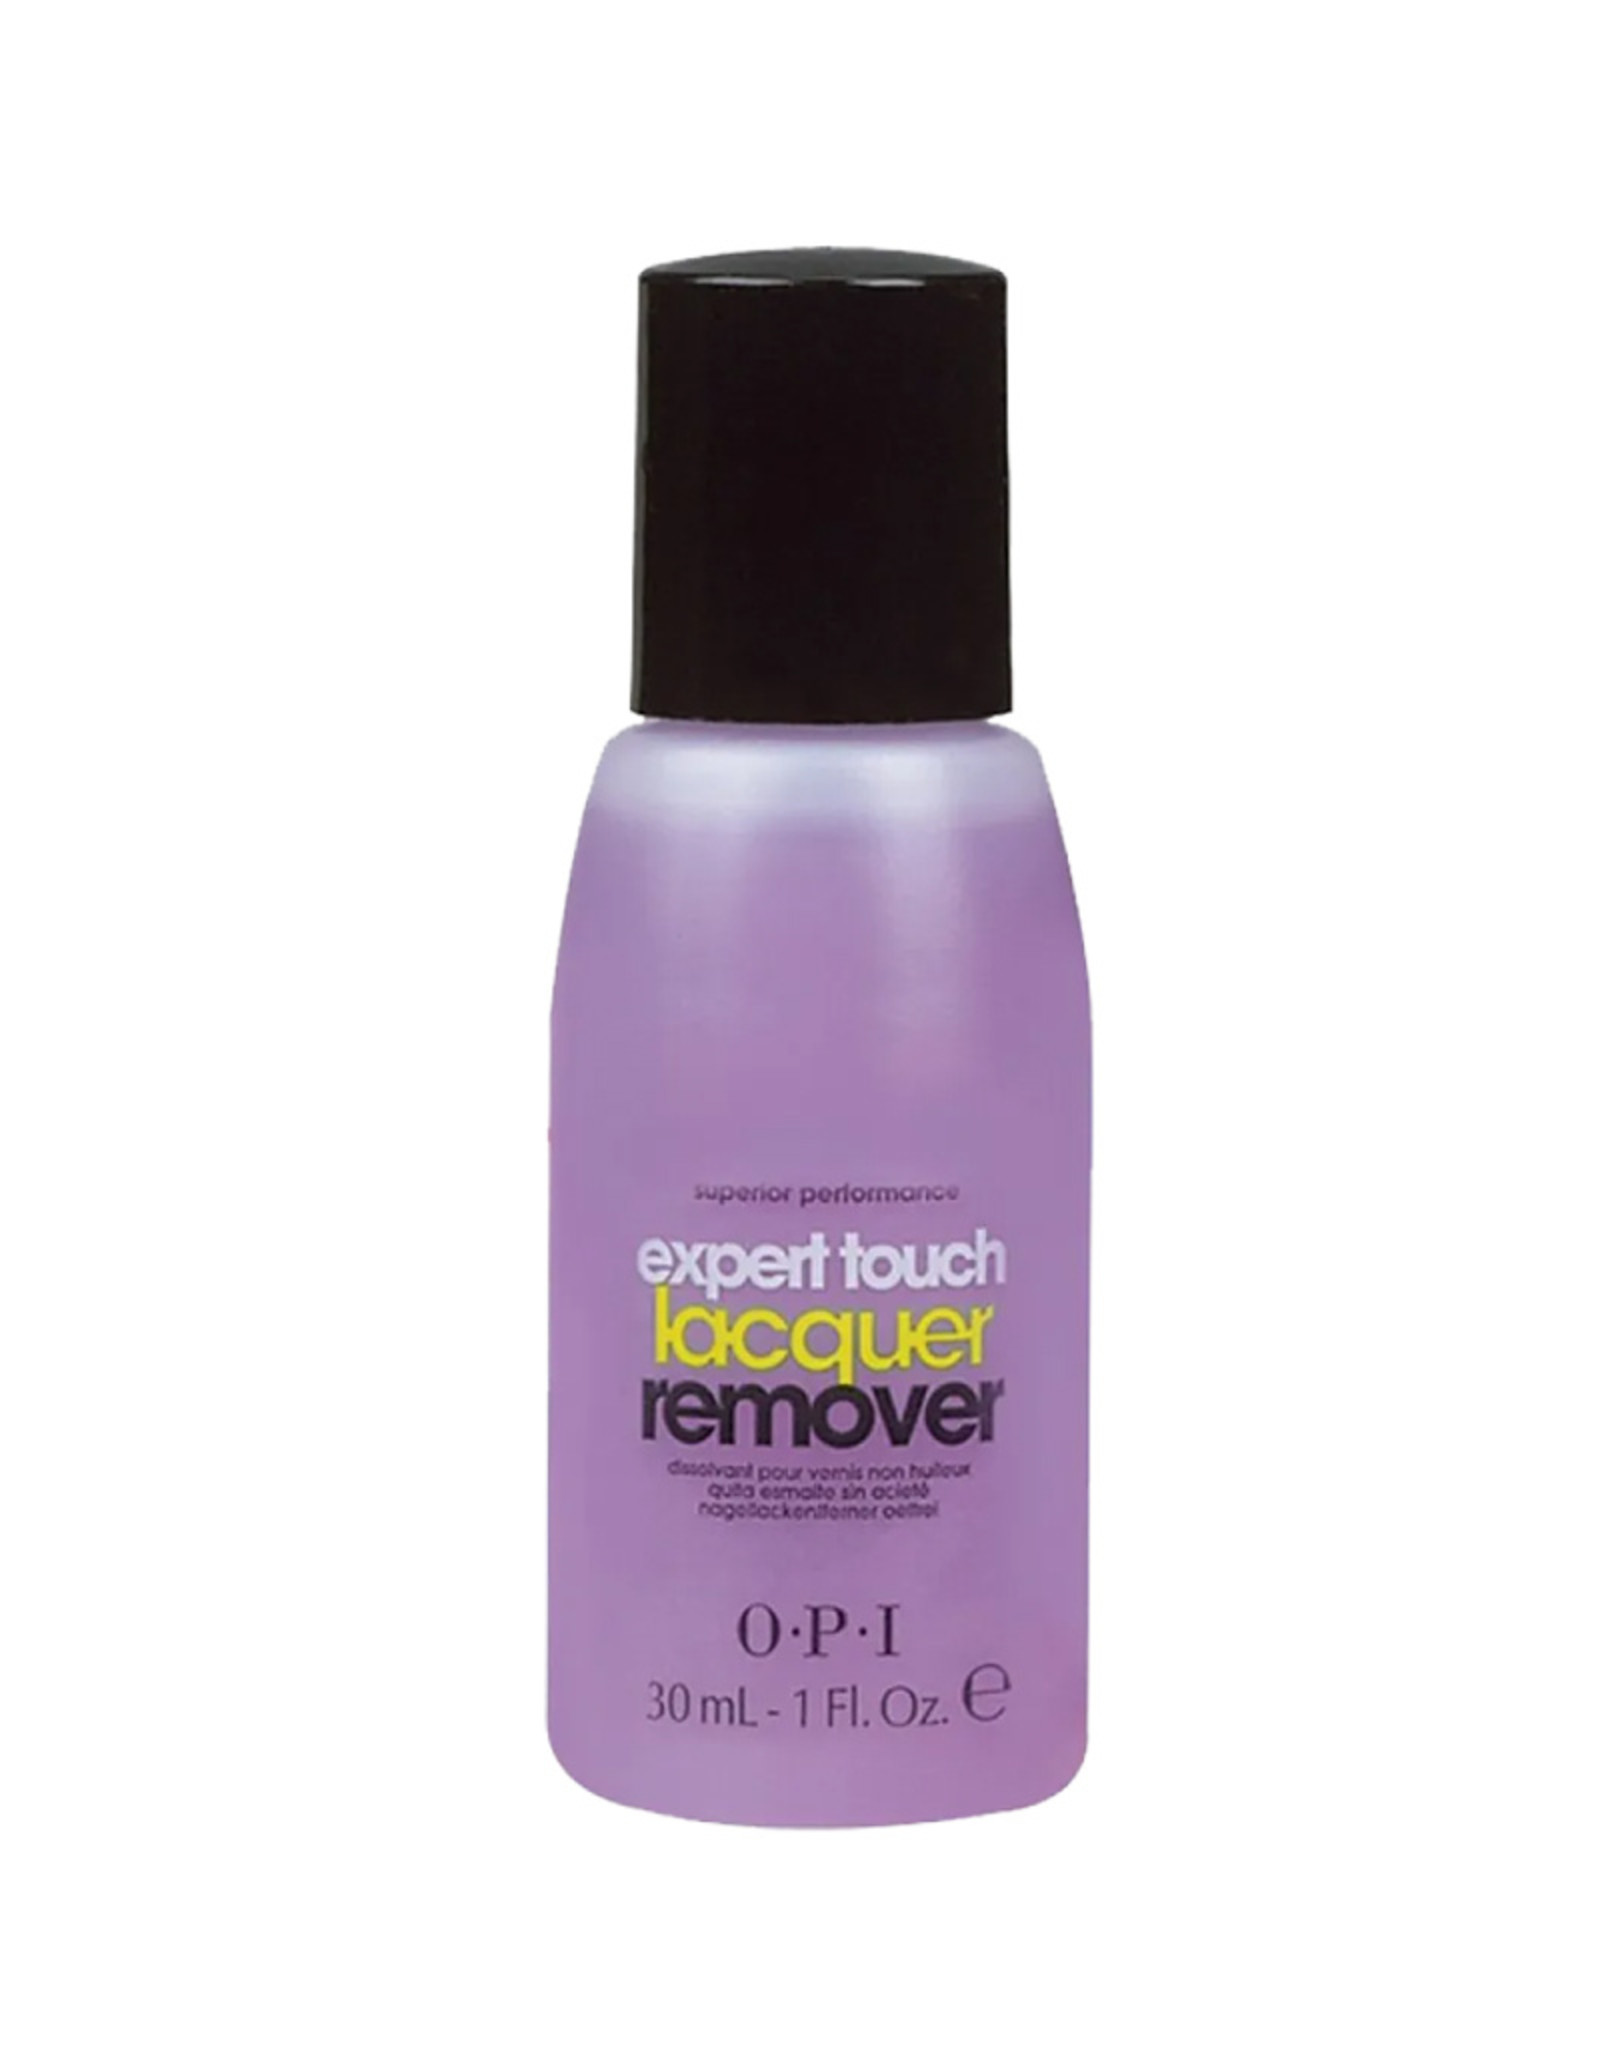 OPI EXPERT TOUCH LACQUER REMOVER 30 ML